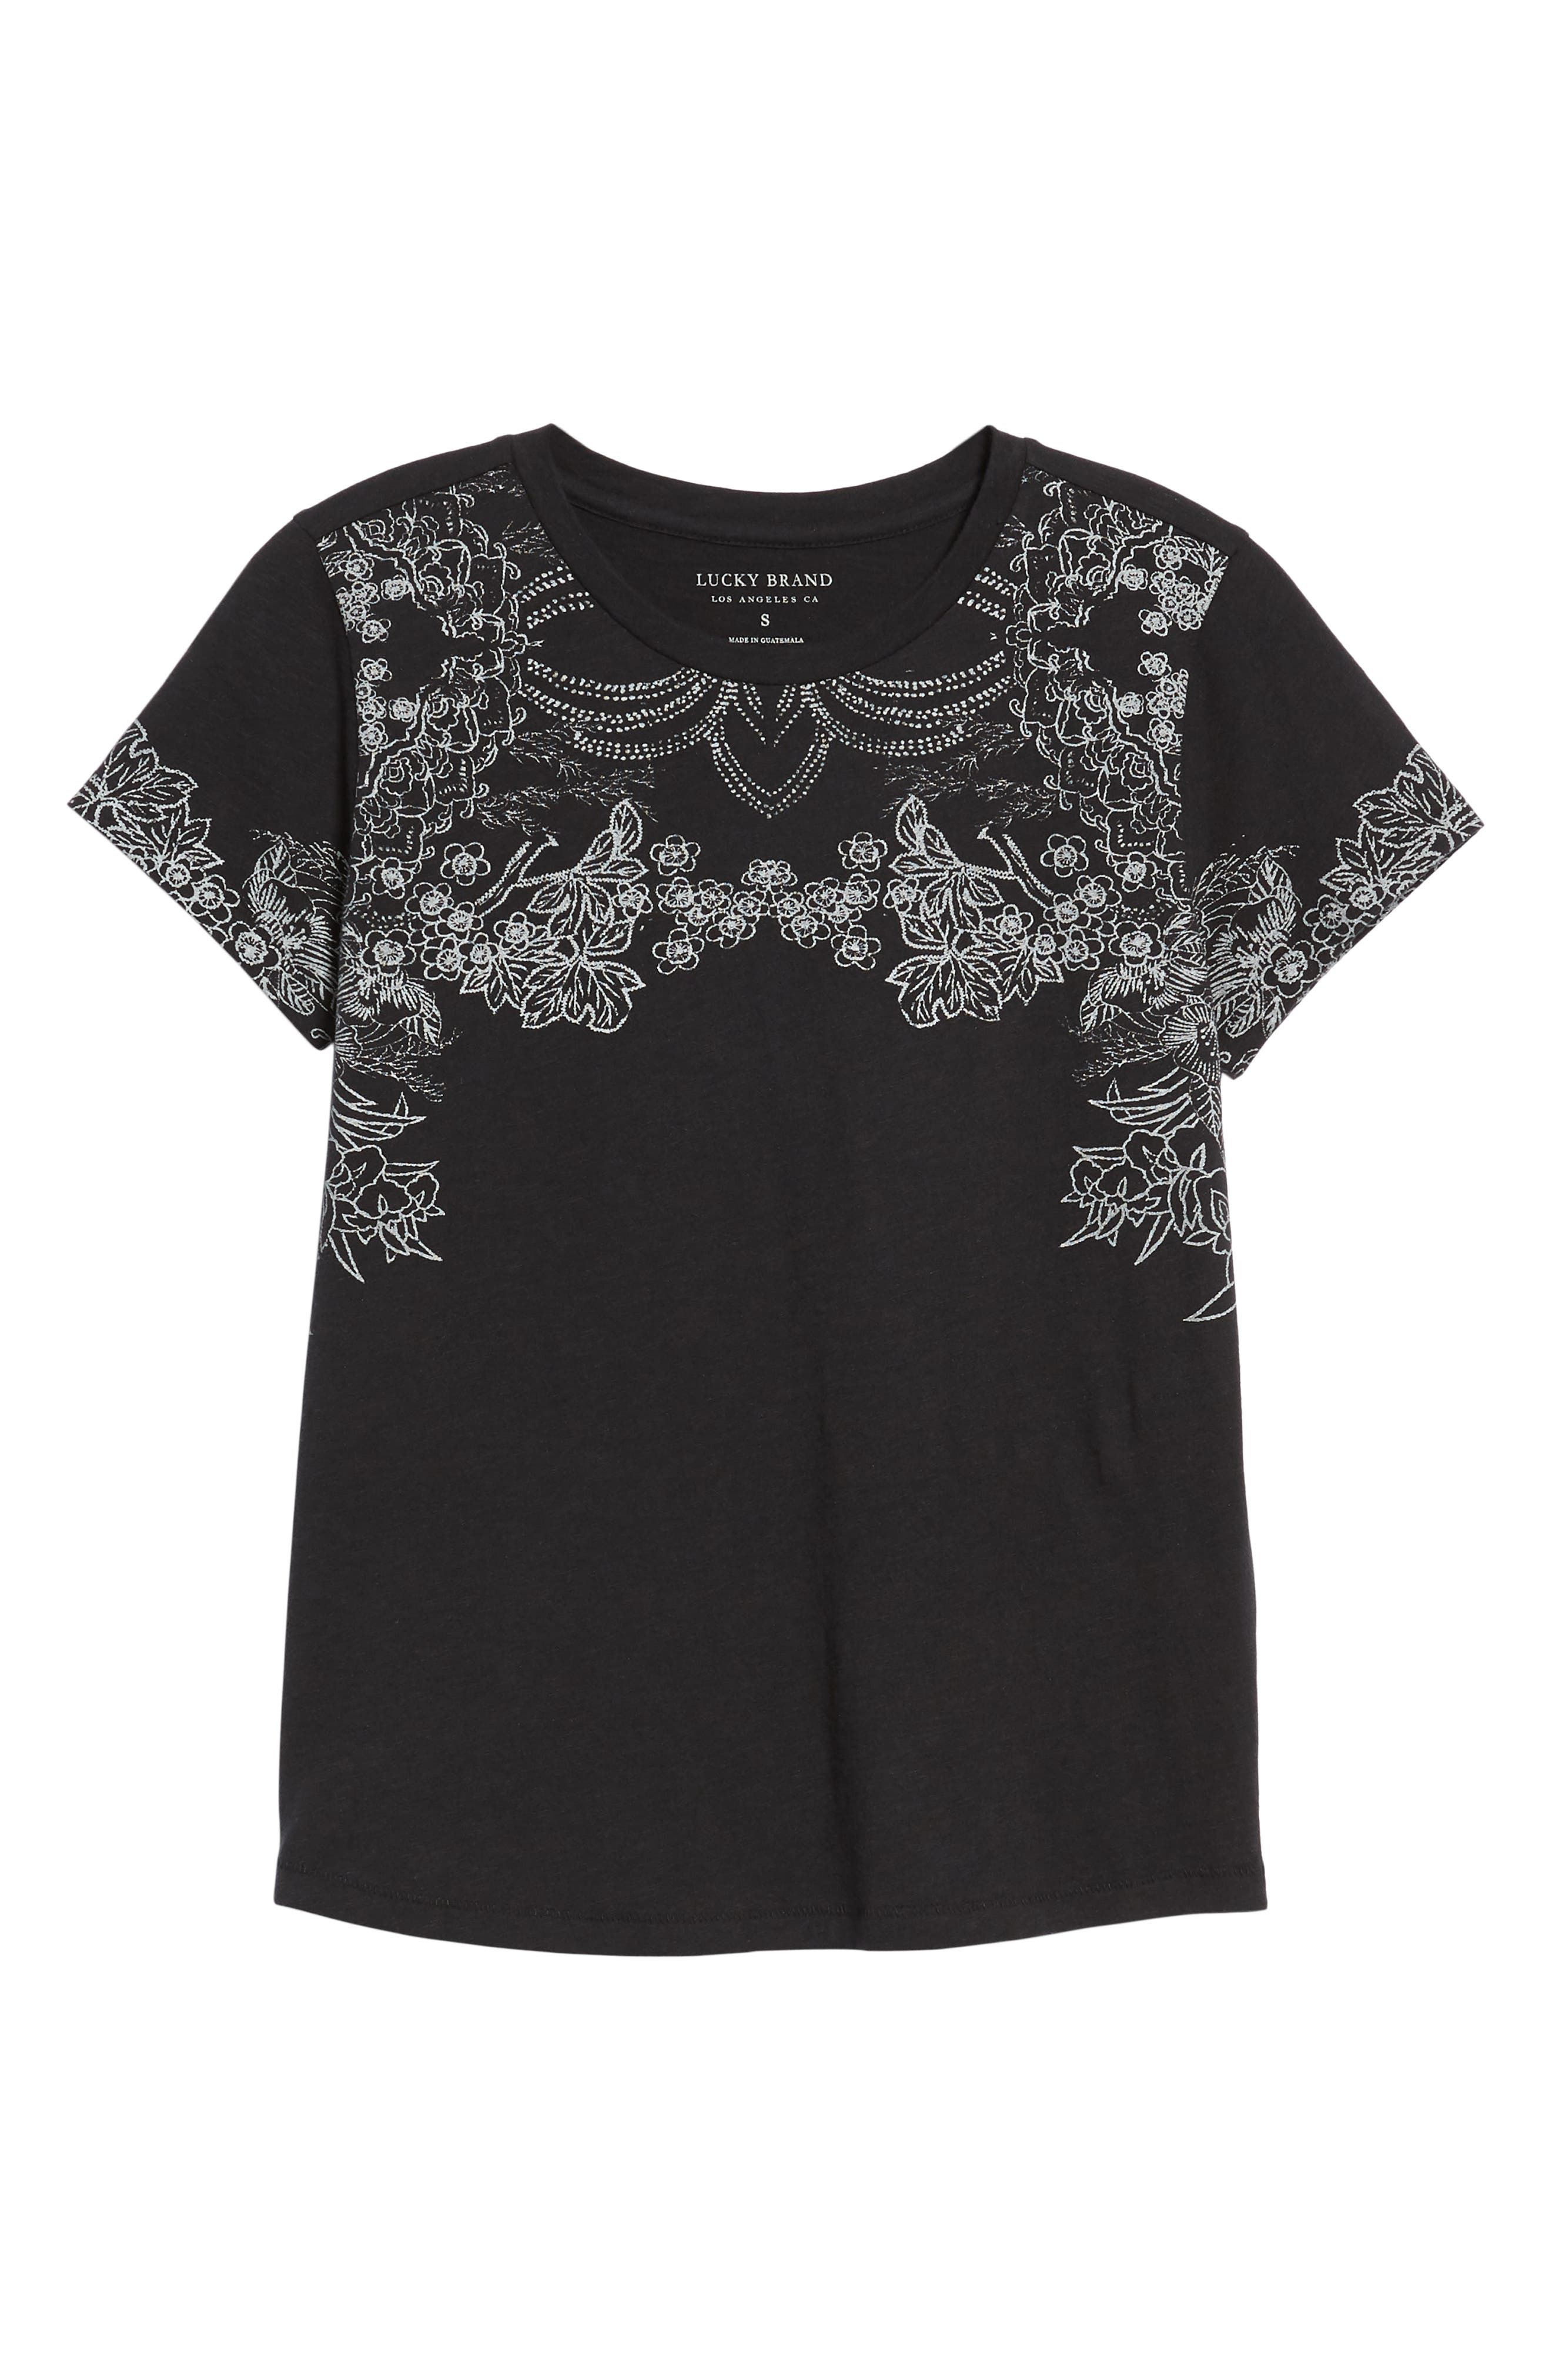 LUCKY BRAND,                             Embroidered Tee,                             Alternate thumbnail 6, color,                             001